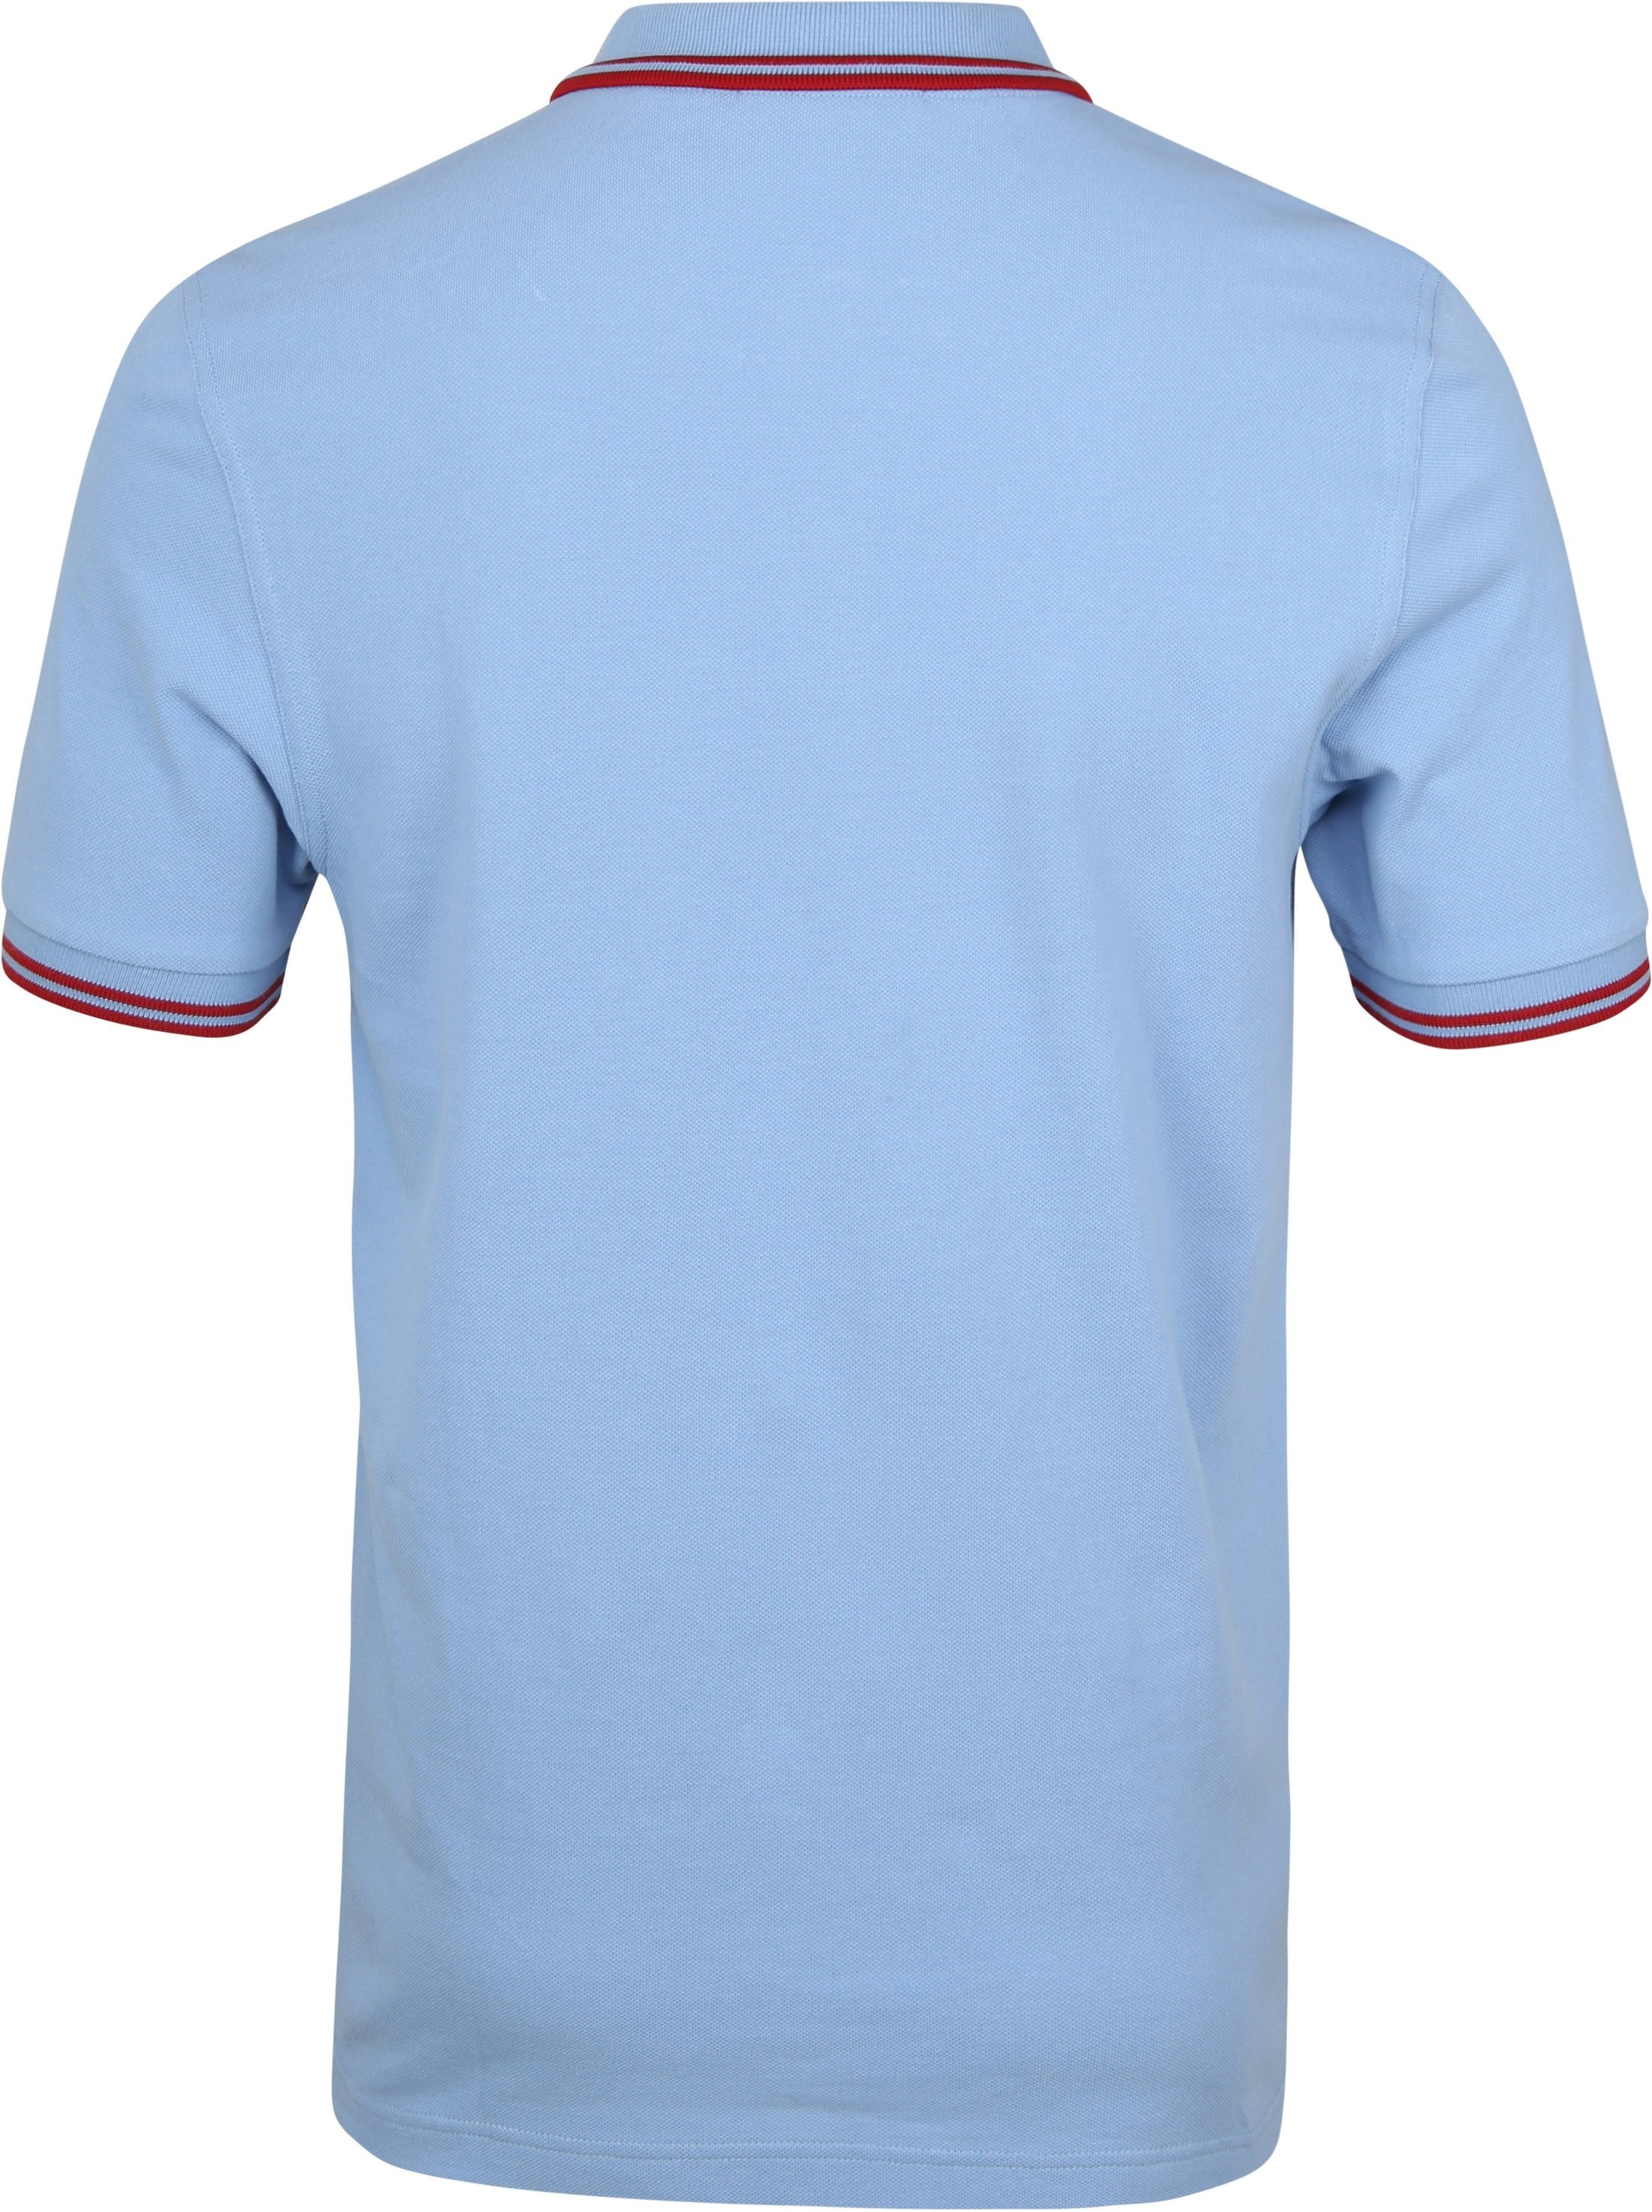 Fred Perry Polo Blauw 444 foto 2